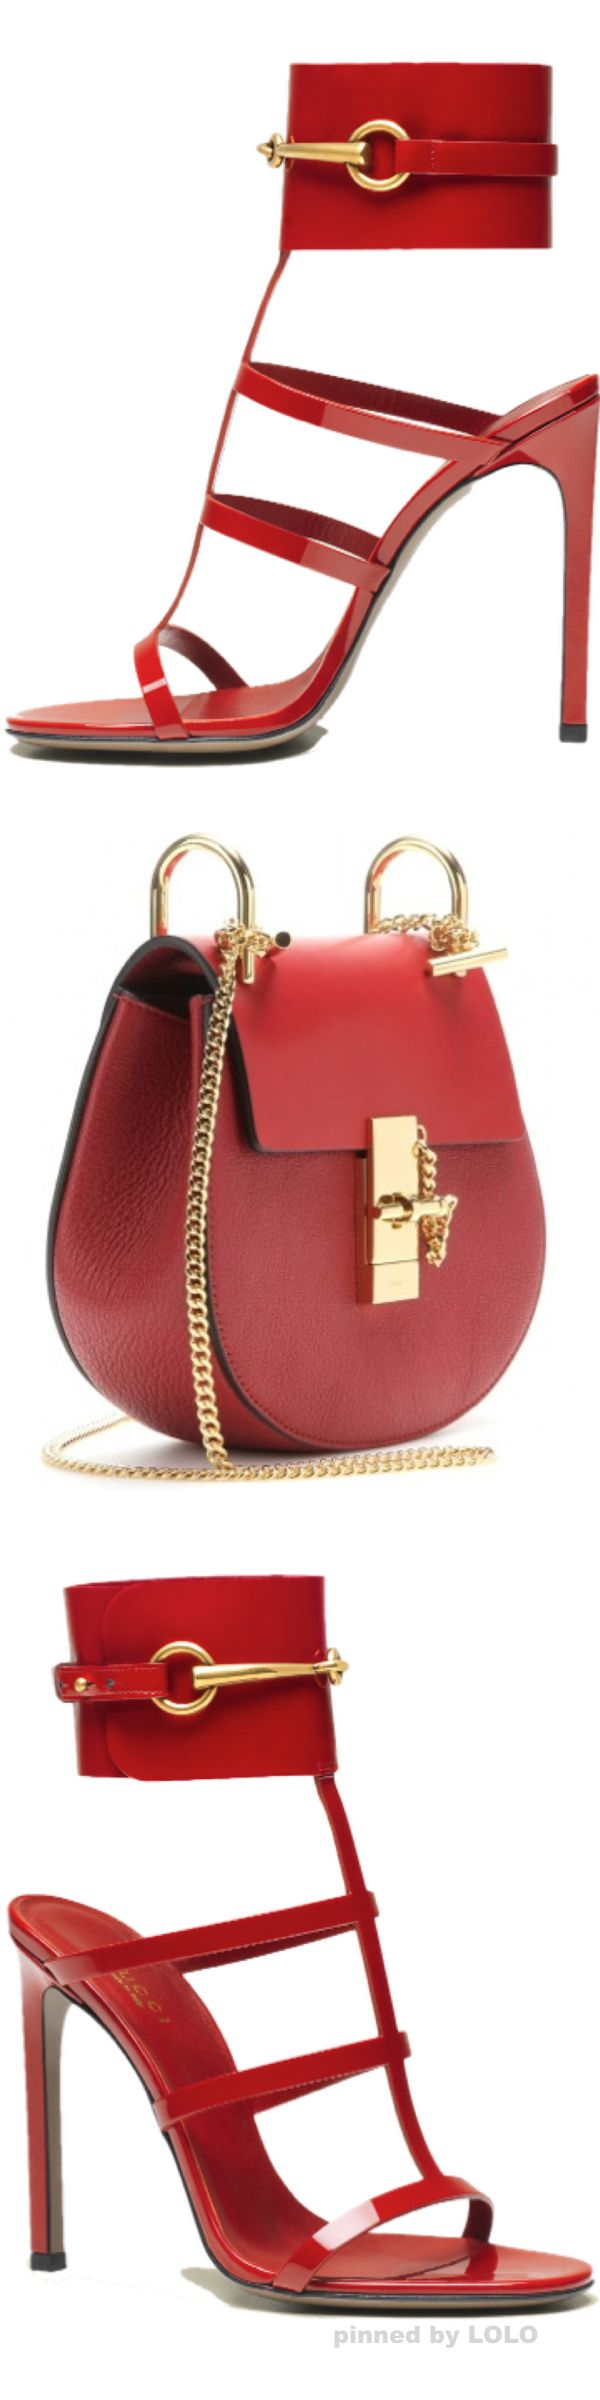 Gucci ~ Leather Ankle Strap Sandals, Red and Chloé ~ Drew Small Leather Shoulder Bag, Red